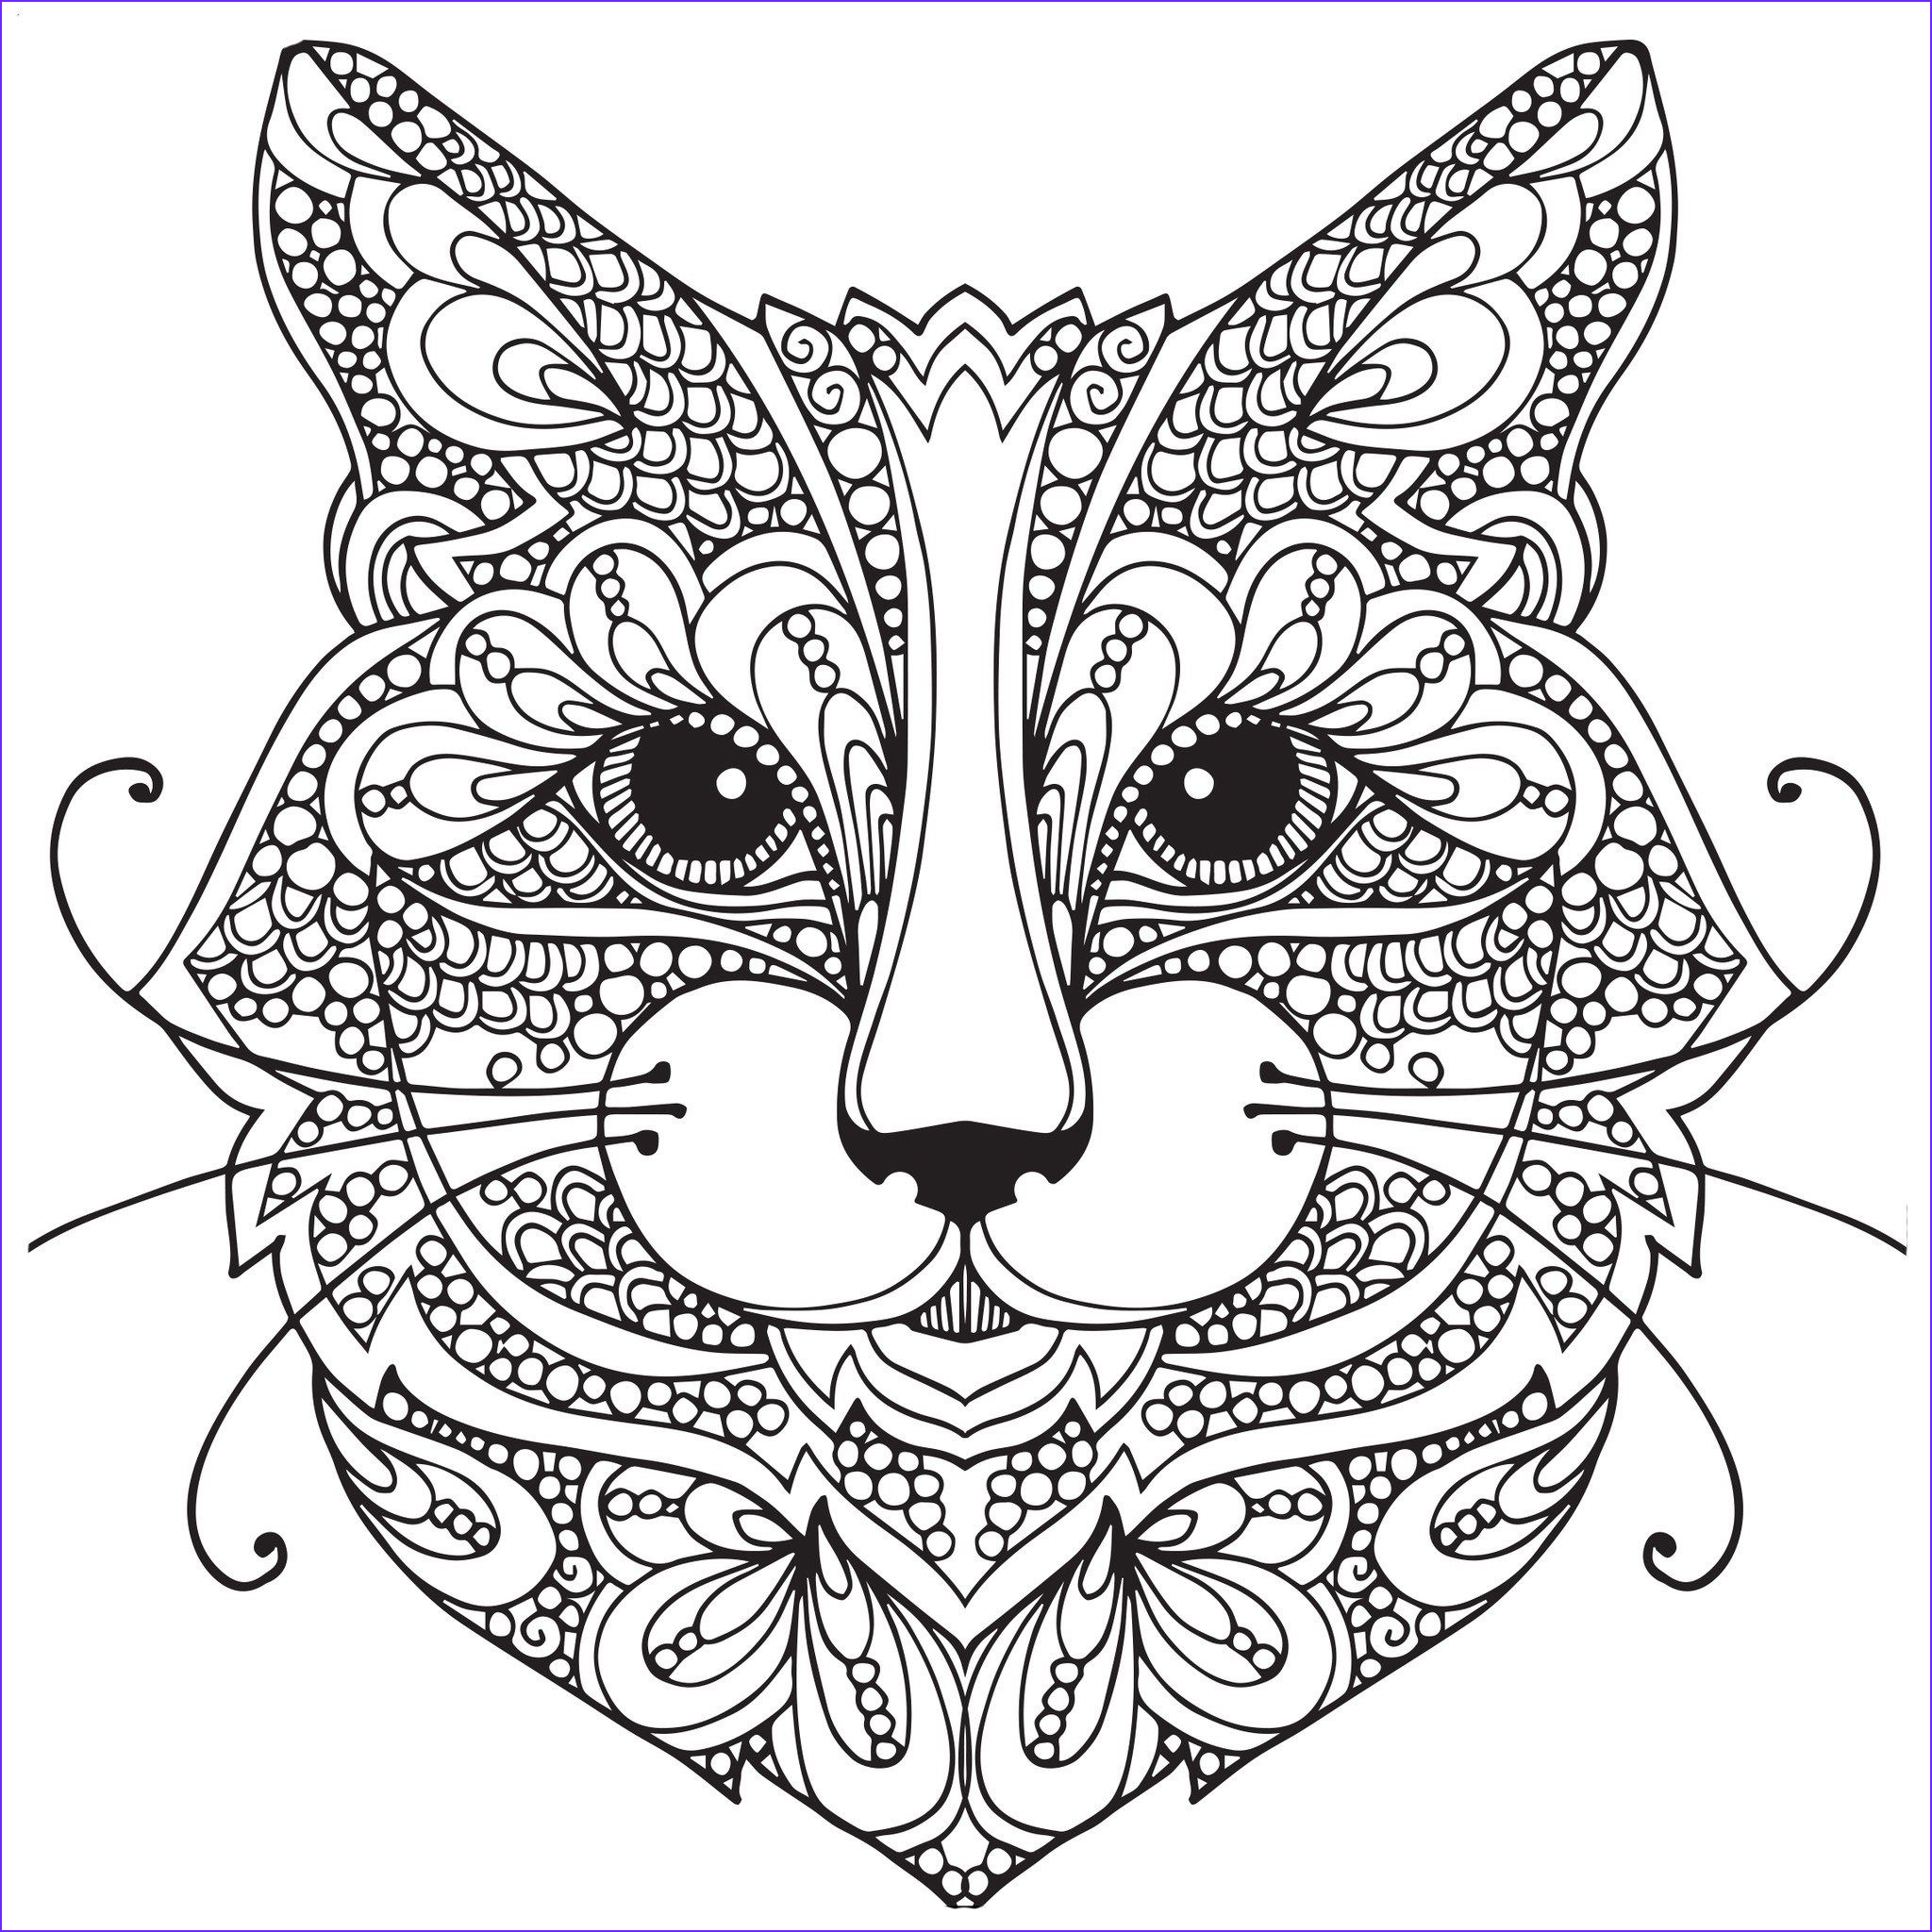 Adult Coloring Pages Cat Luxury Photography Adult Coloring Pages Cat 1 Coloring Pages